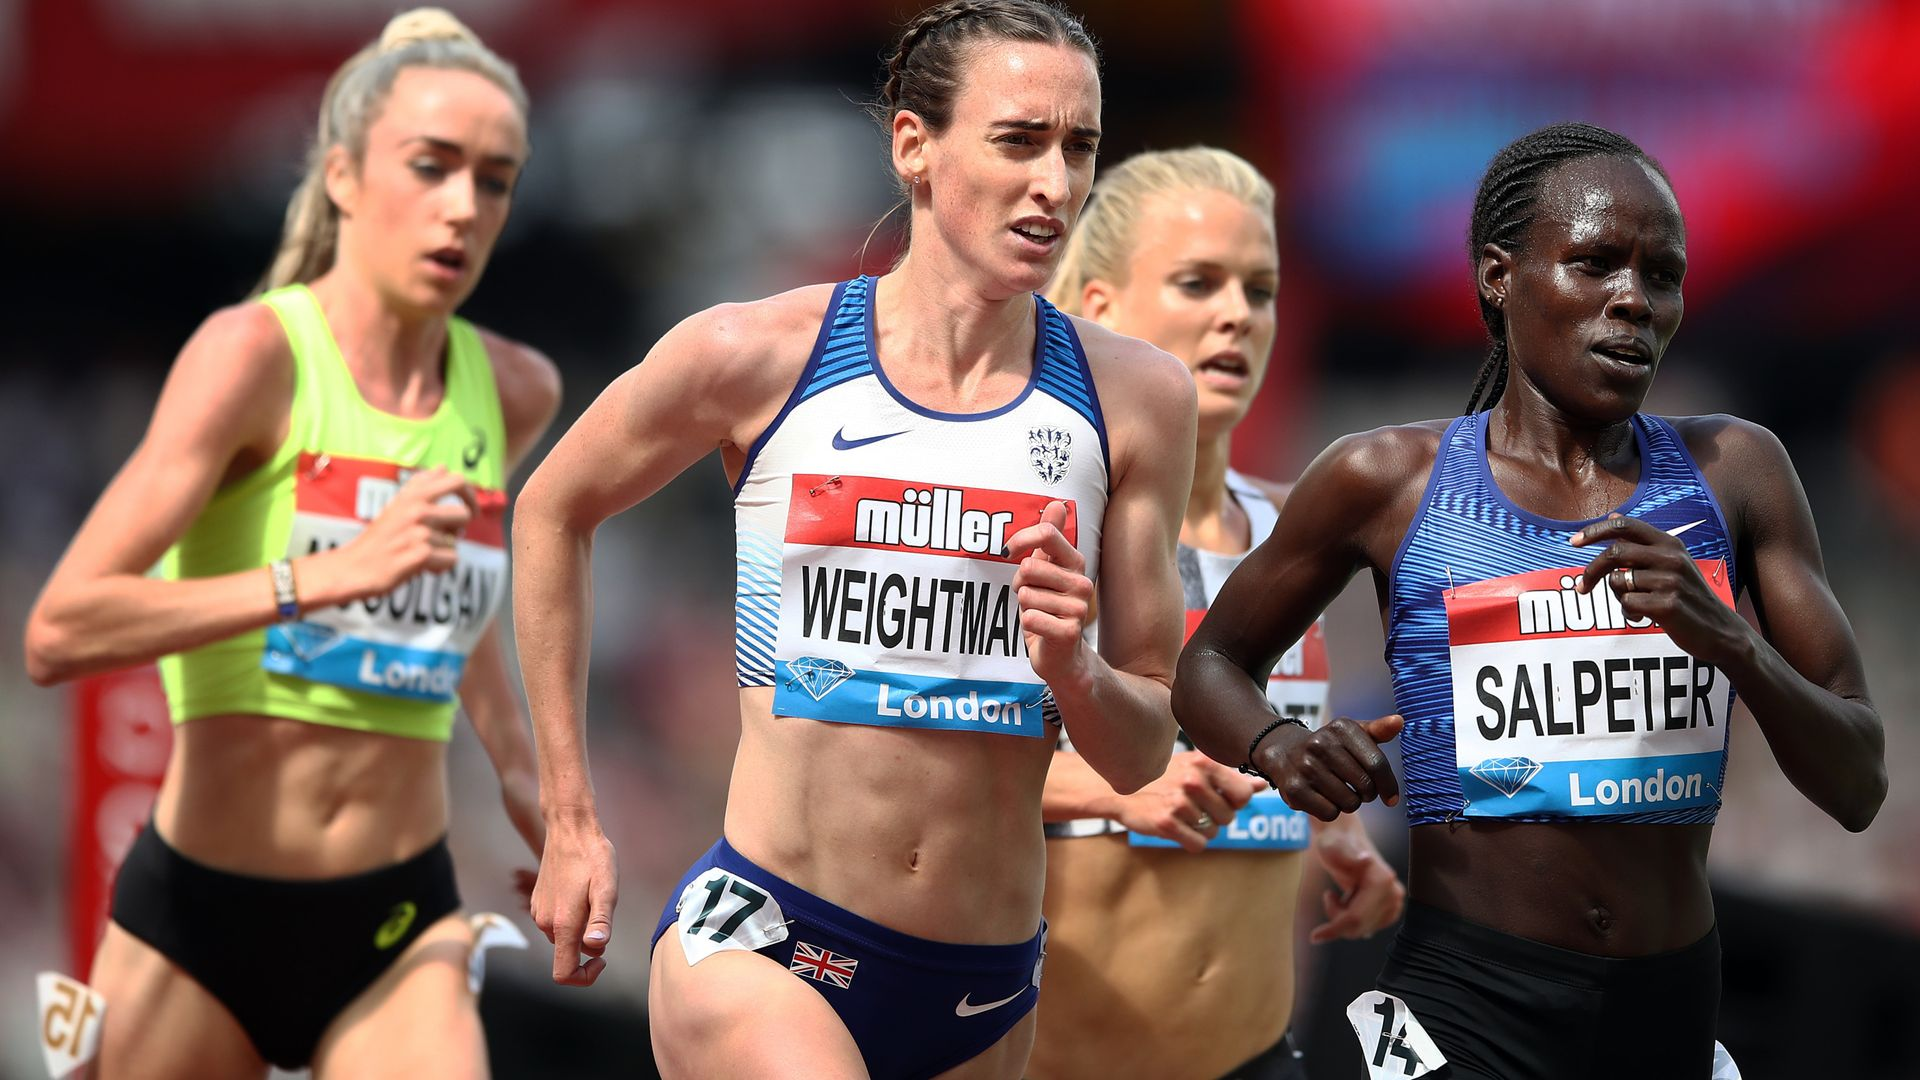 2020 London Anniversary Games cancelled